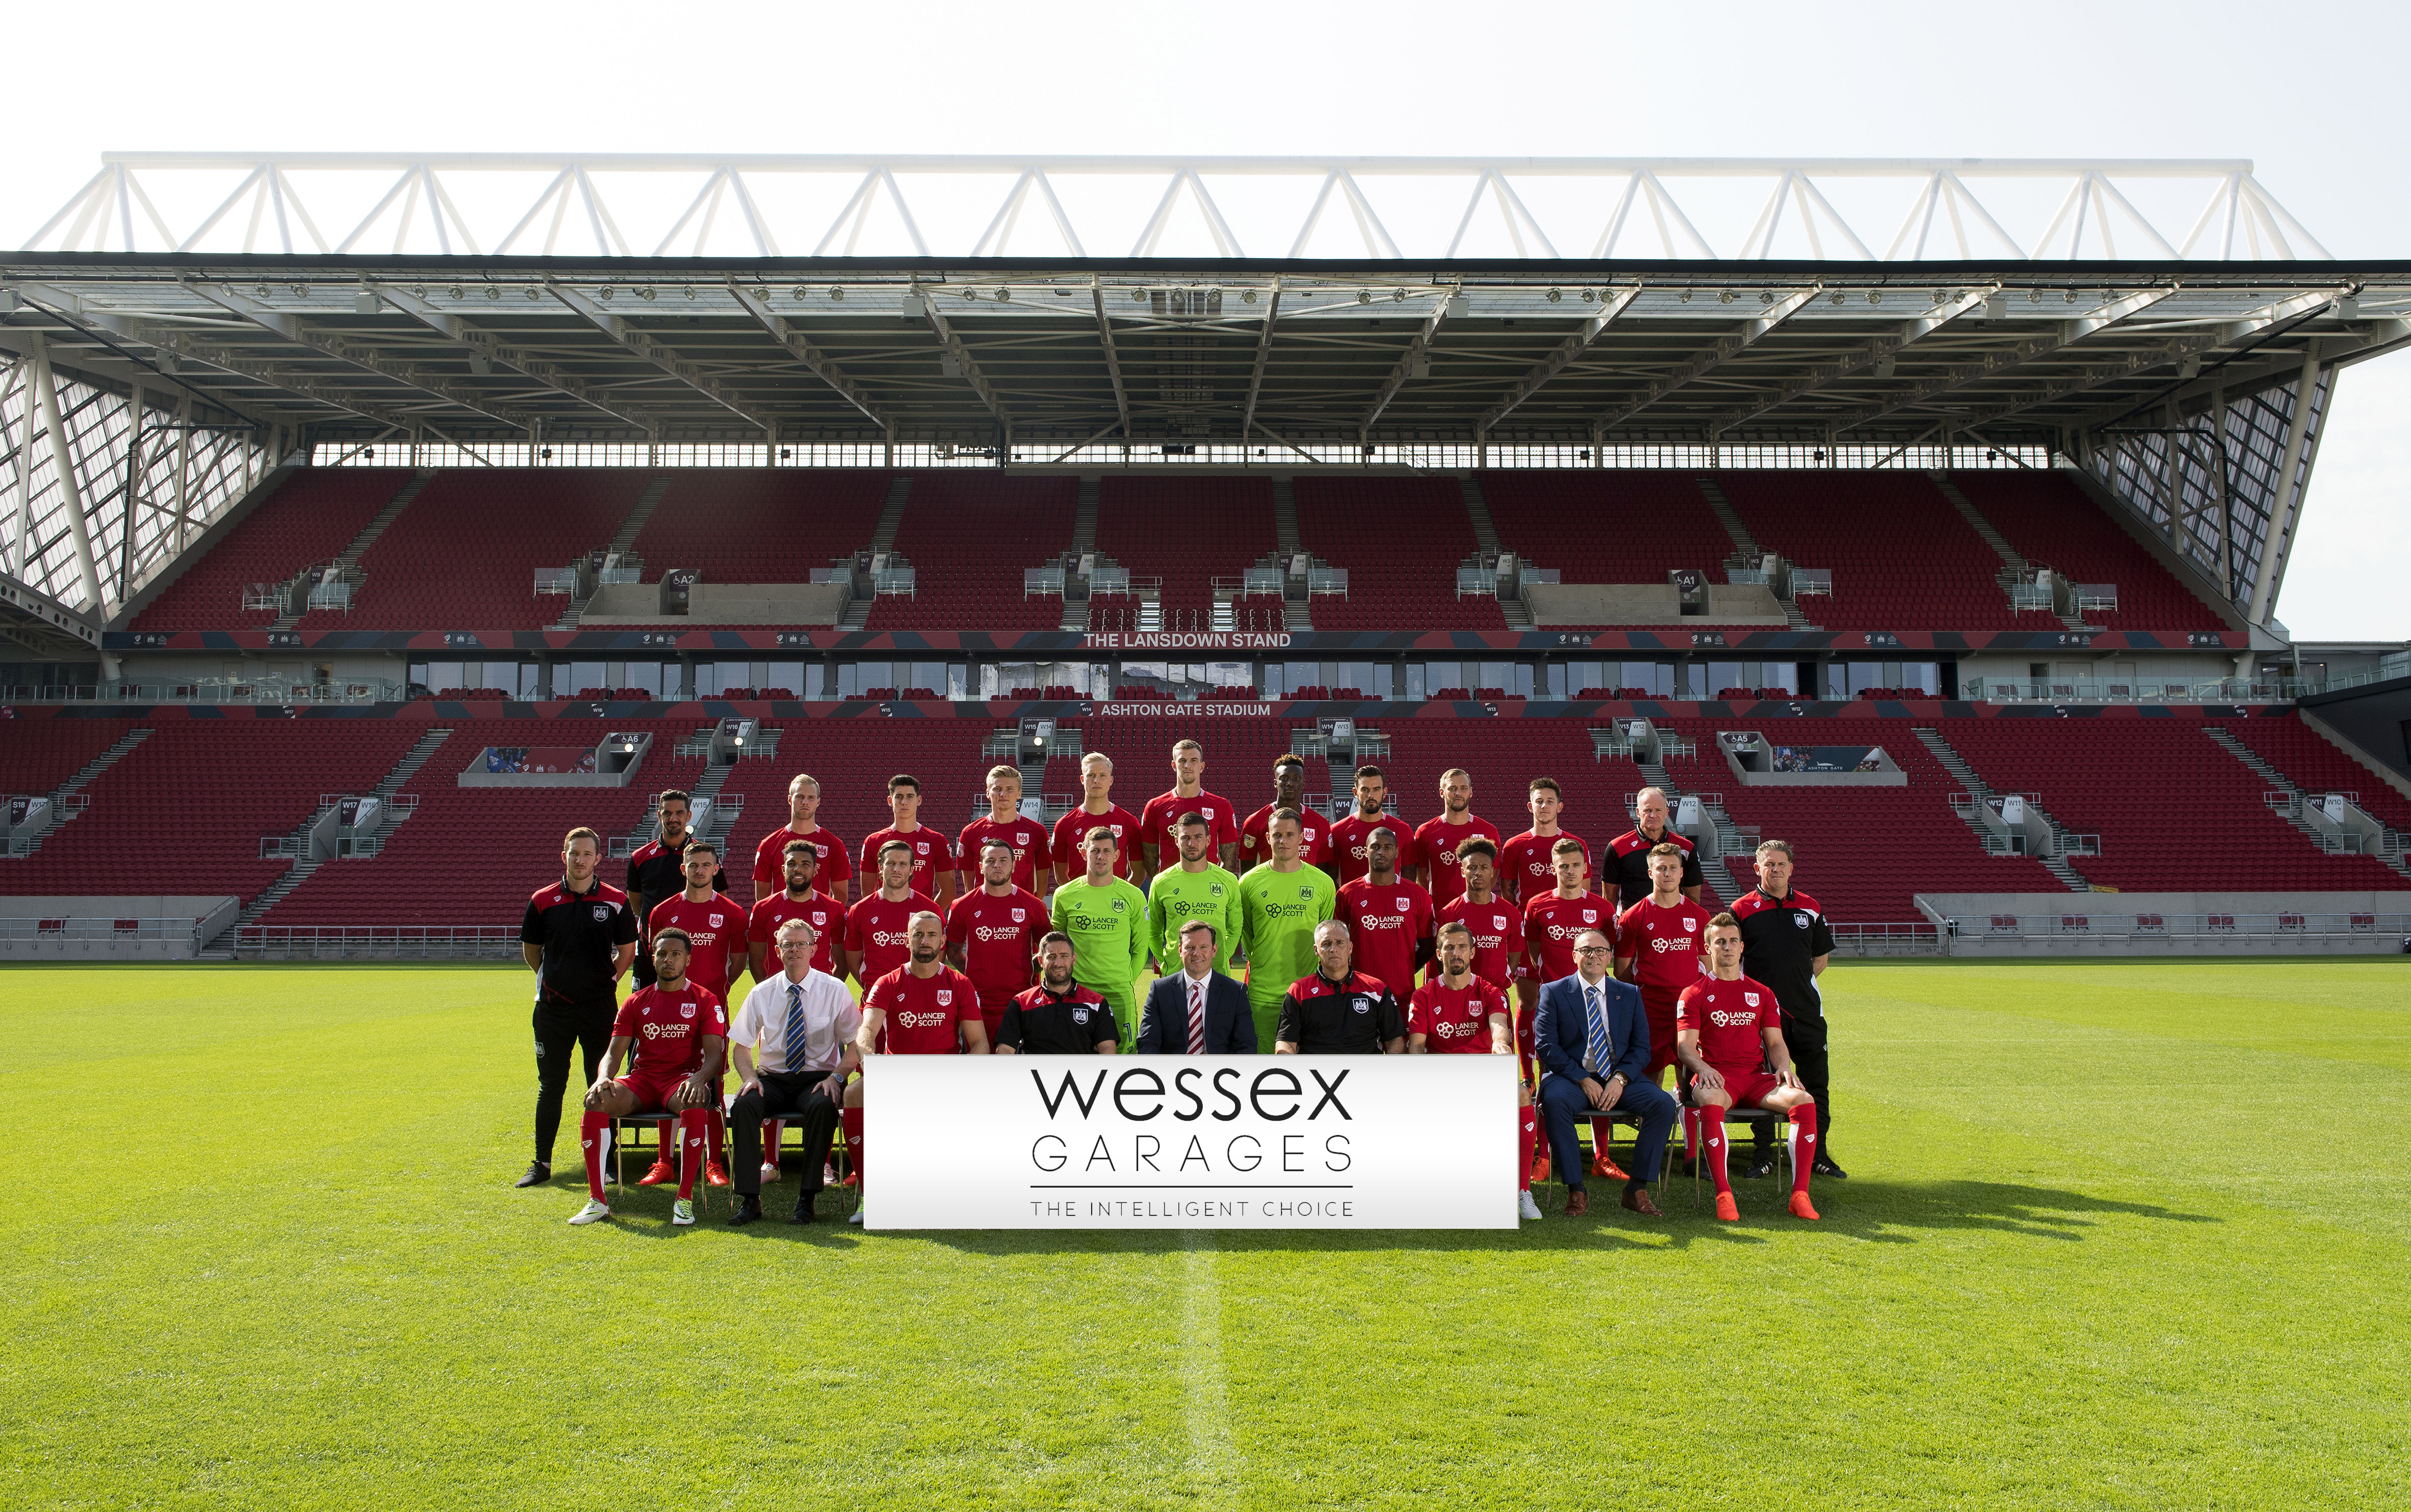 Bristol City have a team photo with Wessex Garages staff Keith Brock and Andy Provis